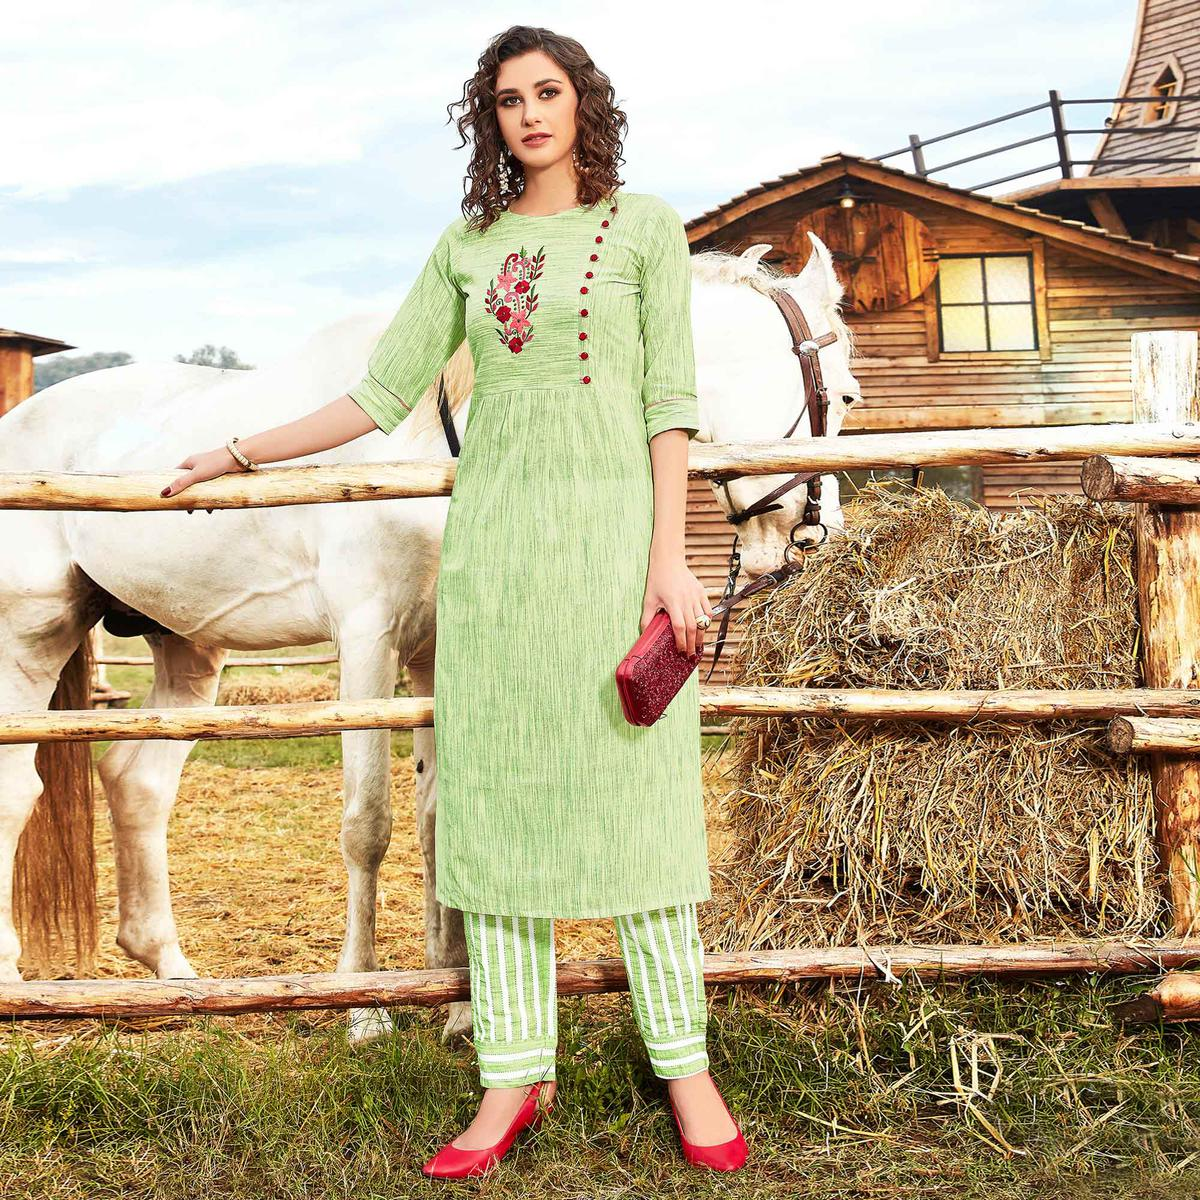 Desirable Green Colored Casual Wear Floral Embroidered Handloom Cotton Linen Kurti-Pant Set